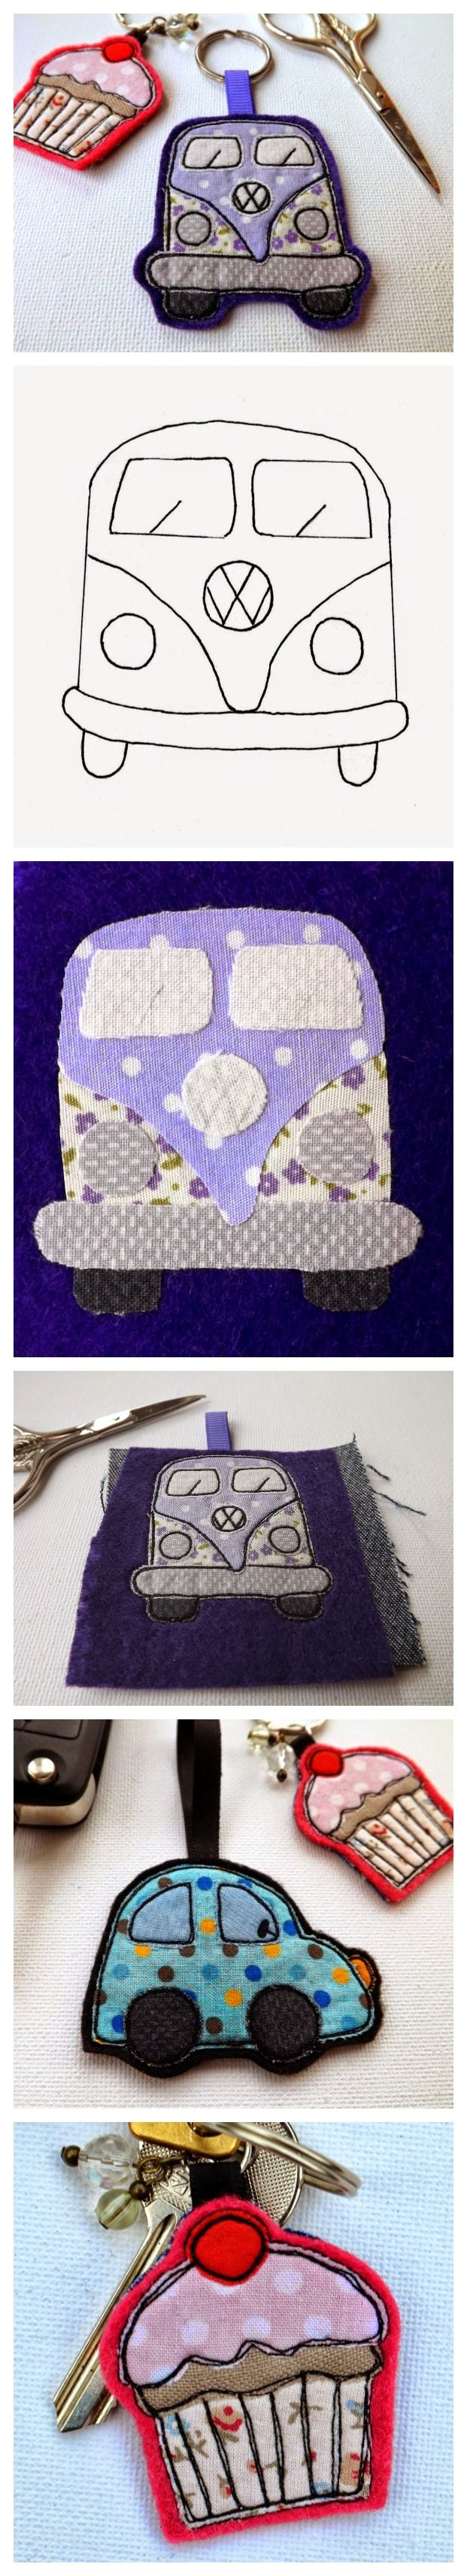 Felt VW Camper Van Keyring with Pattern and Tutorial. Also makes a perfect brooch or bag charm.  Full tutorial at www.sewforsoul.blogspot.co.uk